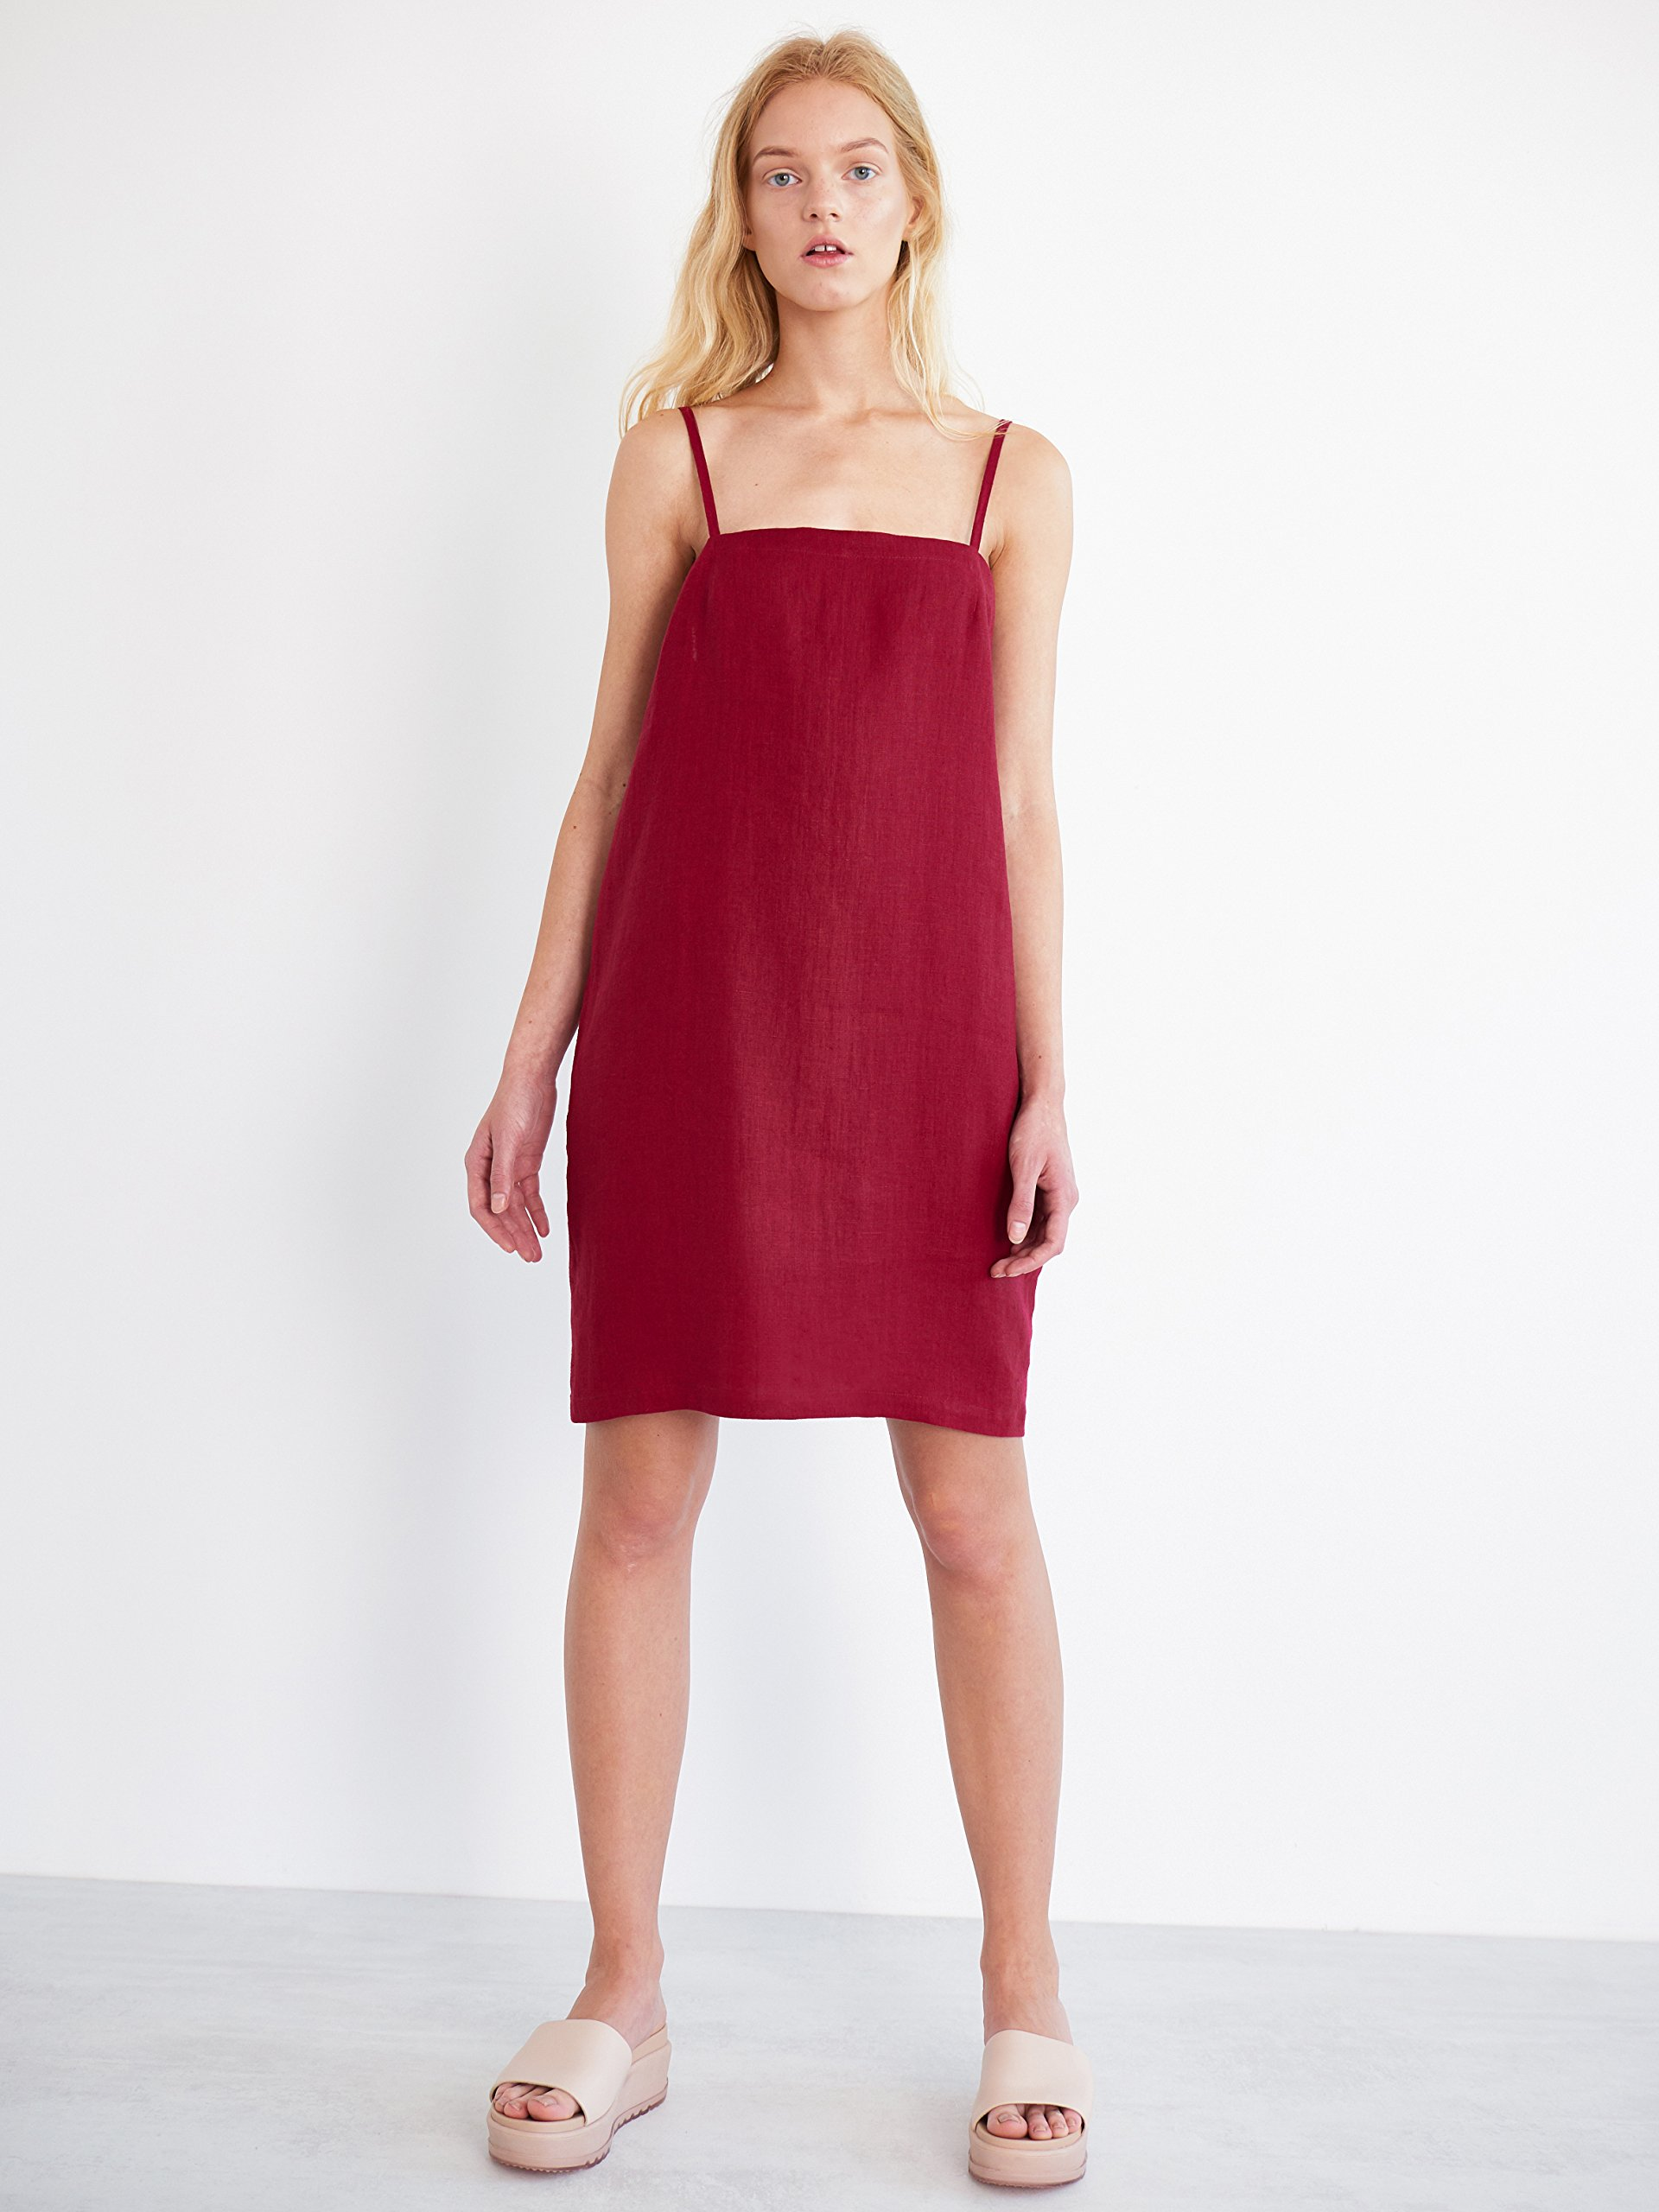 VIOLET Linen Slip Dress in Cherry Red Sleeveless Summer Thin Strap Cami Camisole Ladies Women